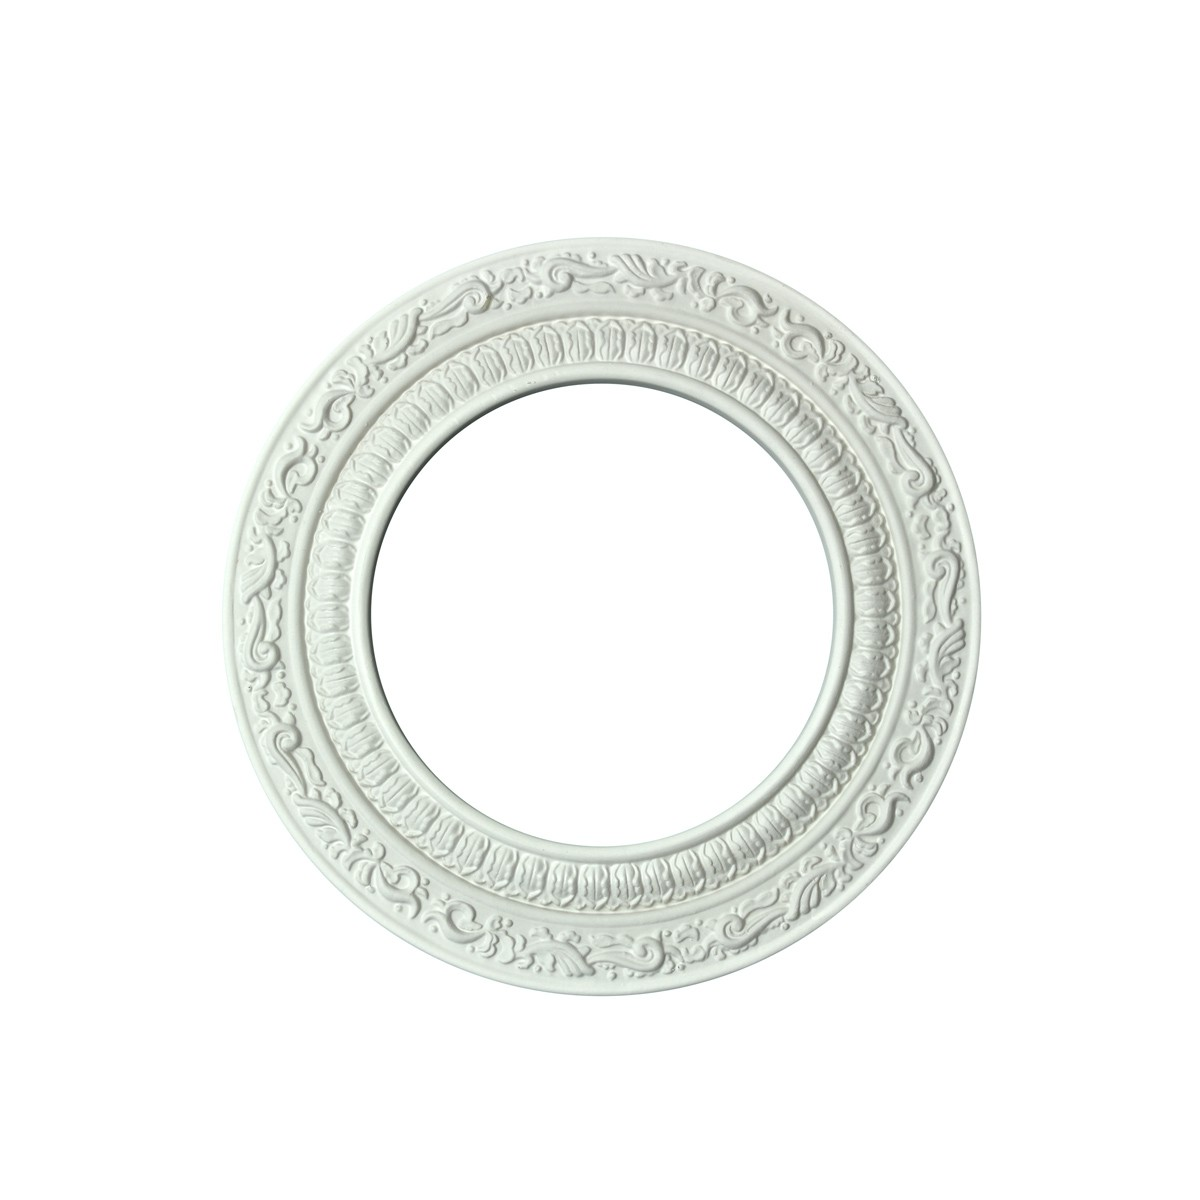 Spot Light Trim White Urethane Recess 6 ID X 10 OD White Recessed Light Trim Decorative Recessed Lighting Trim Spotlight Ceiling Medallion